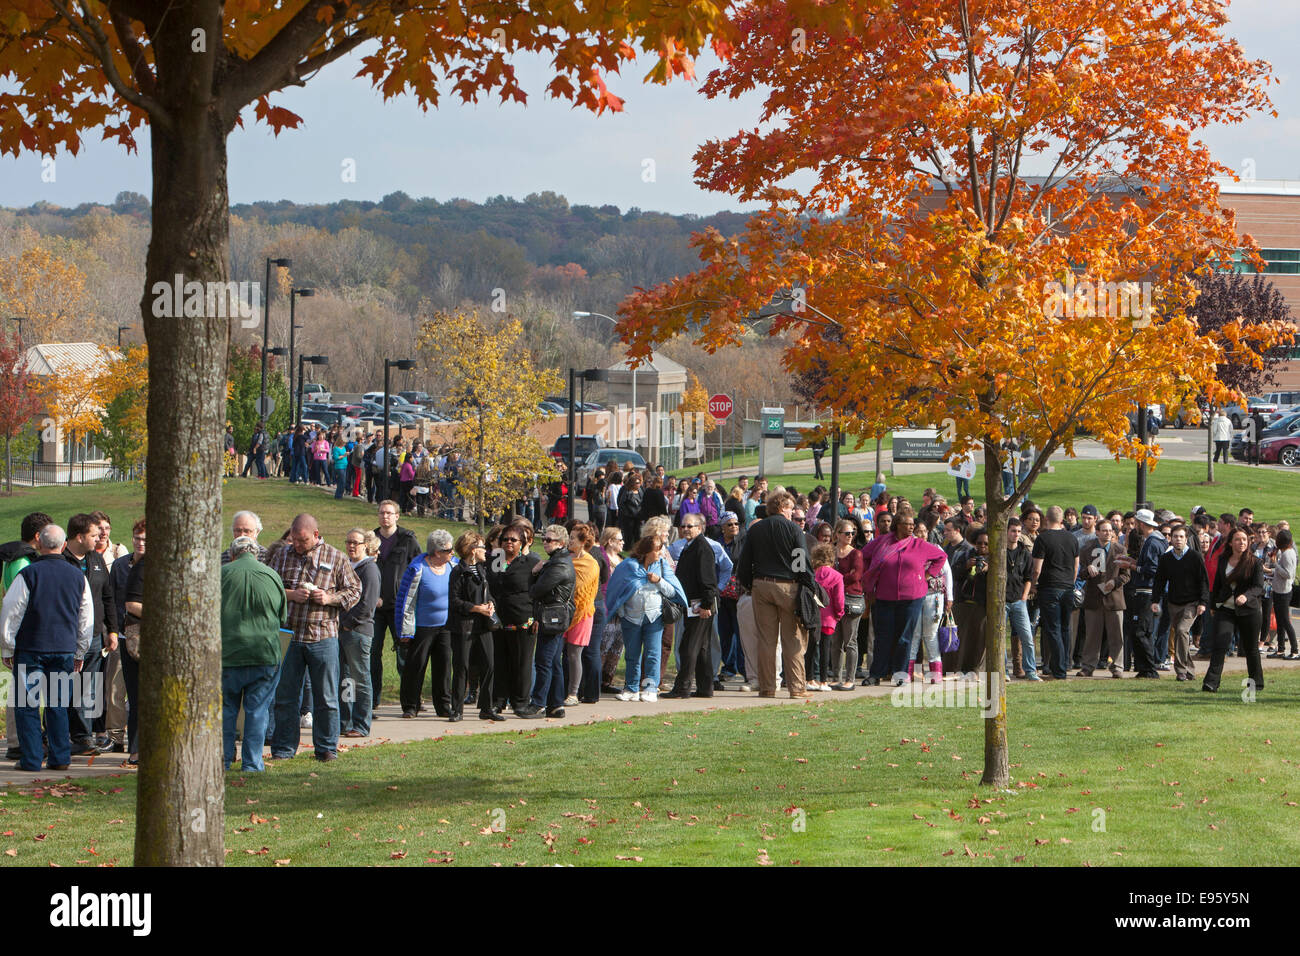 Rochester, Michigan - People wait in line to hear Hillary Rodham Clinton speak at a political rally. - Stock Image